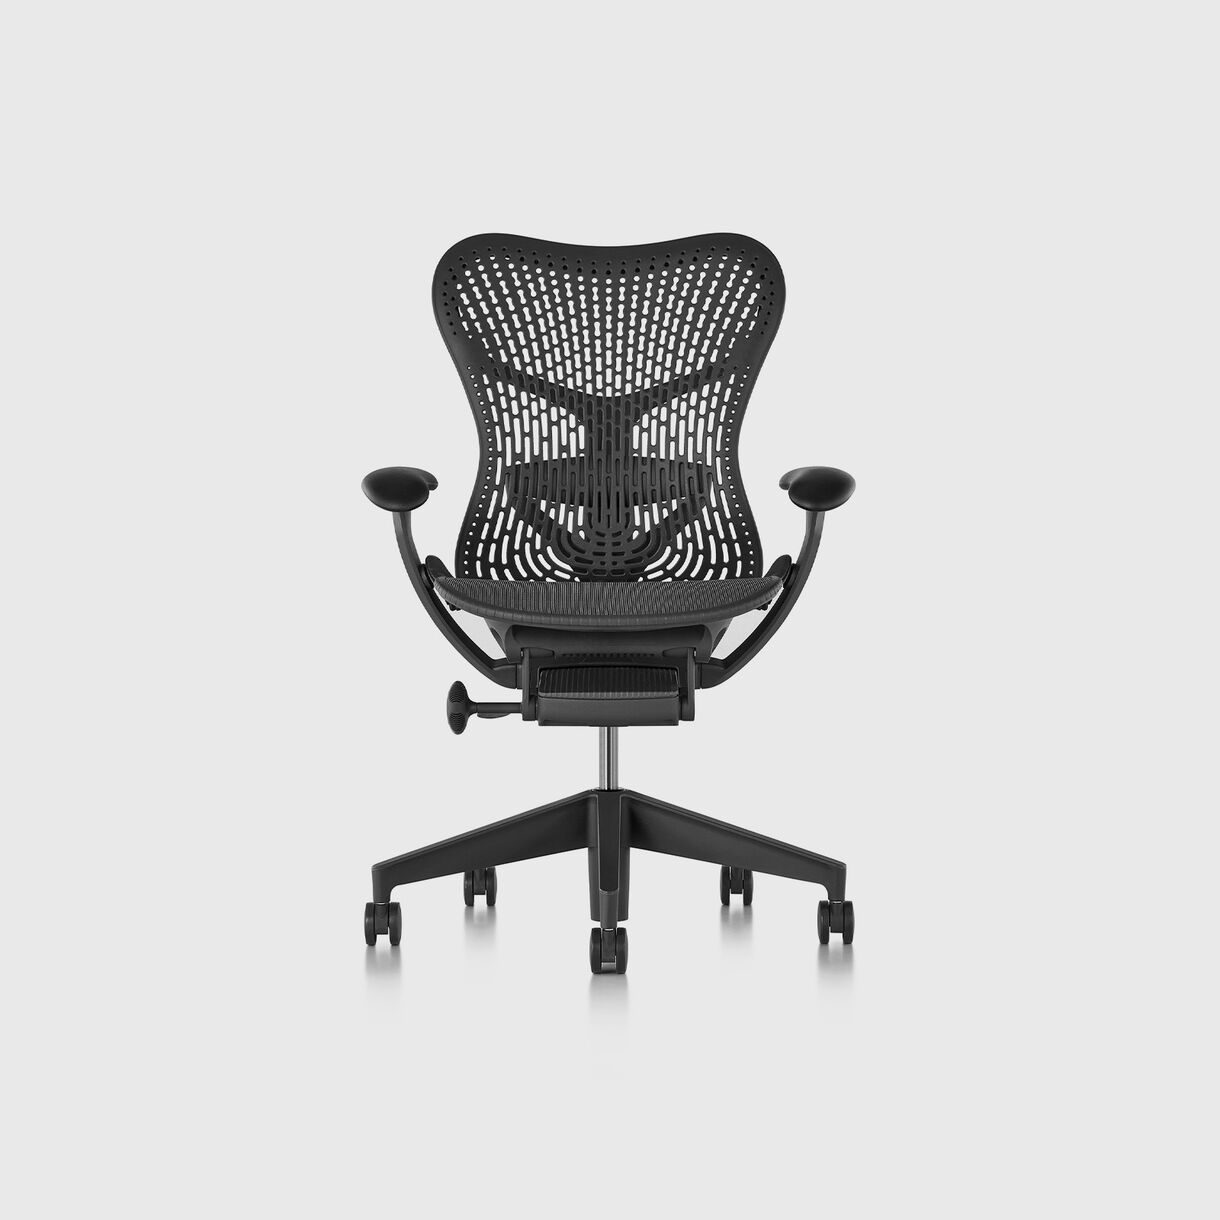 Mirra 2 Work Chair - TriFlex Graphite, Graphite Base & Frame - Fully Adjustable Arms